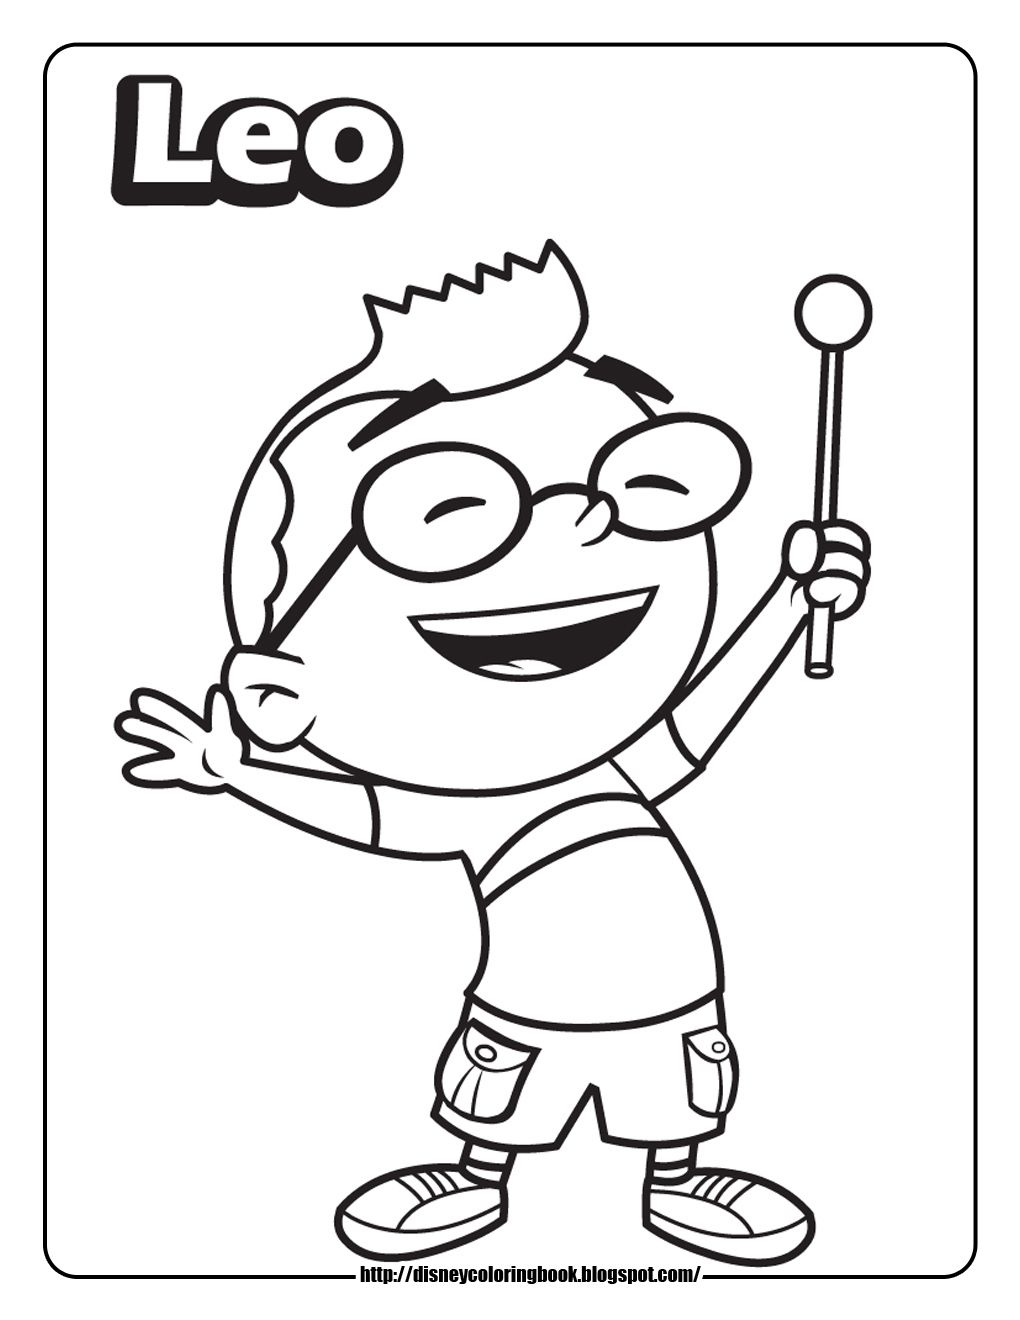 little einsteins leo - coloring page | Party: Fairies (Sydney ...